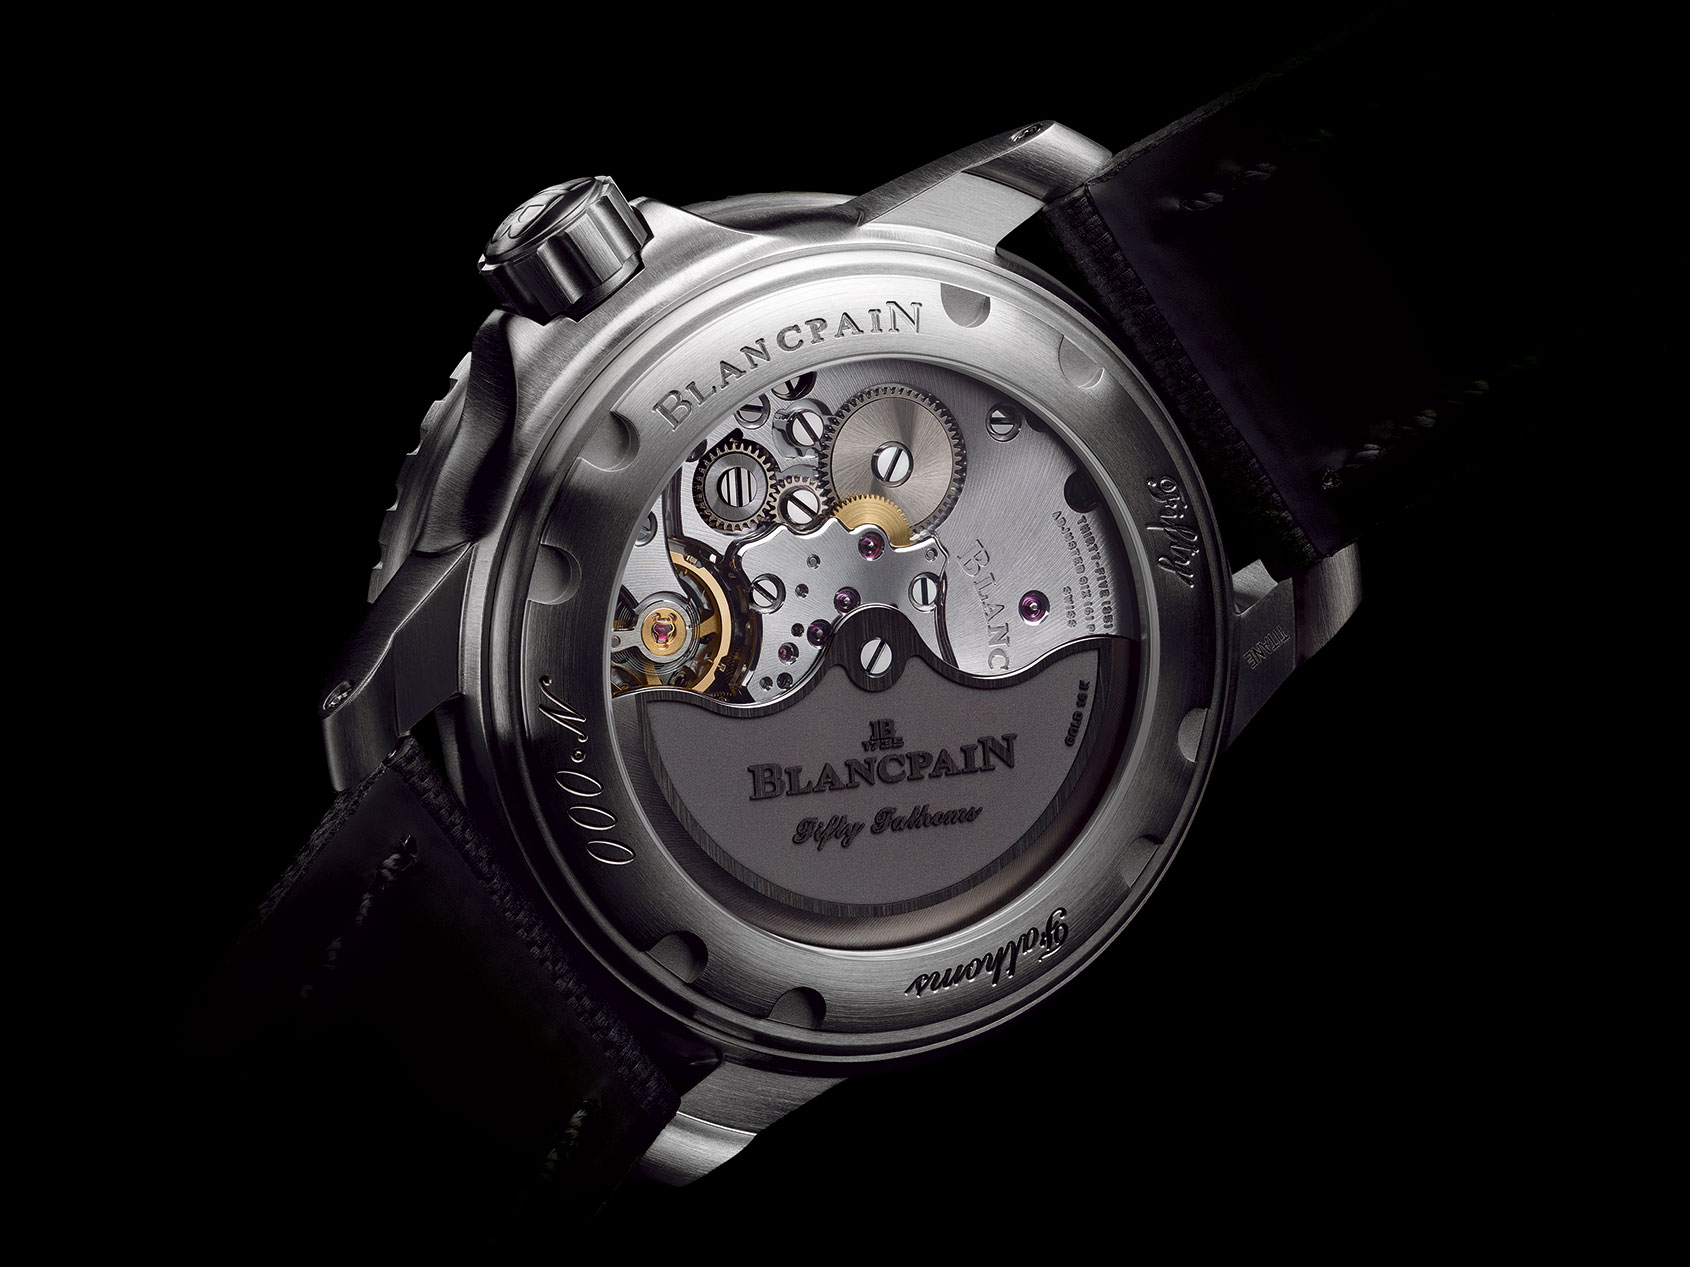 Introducing The Blancpain Fifty Fathoms In Titanium Time And Tide